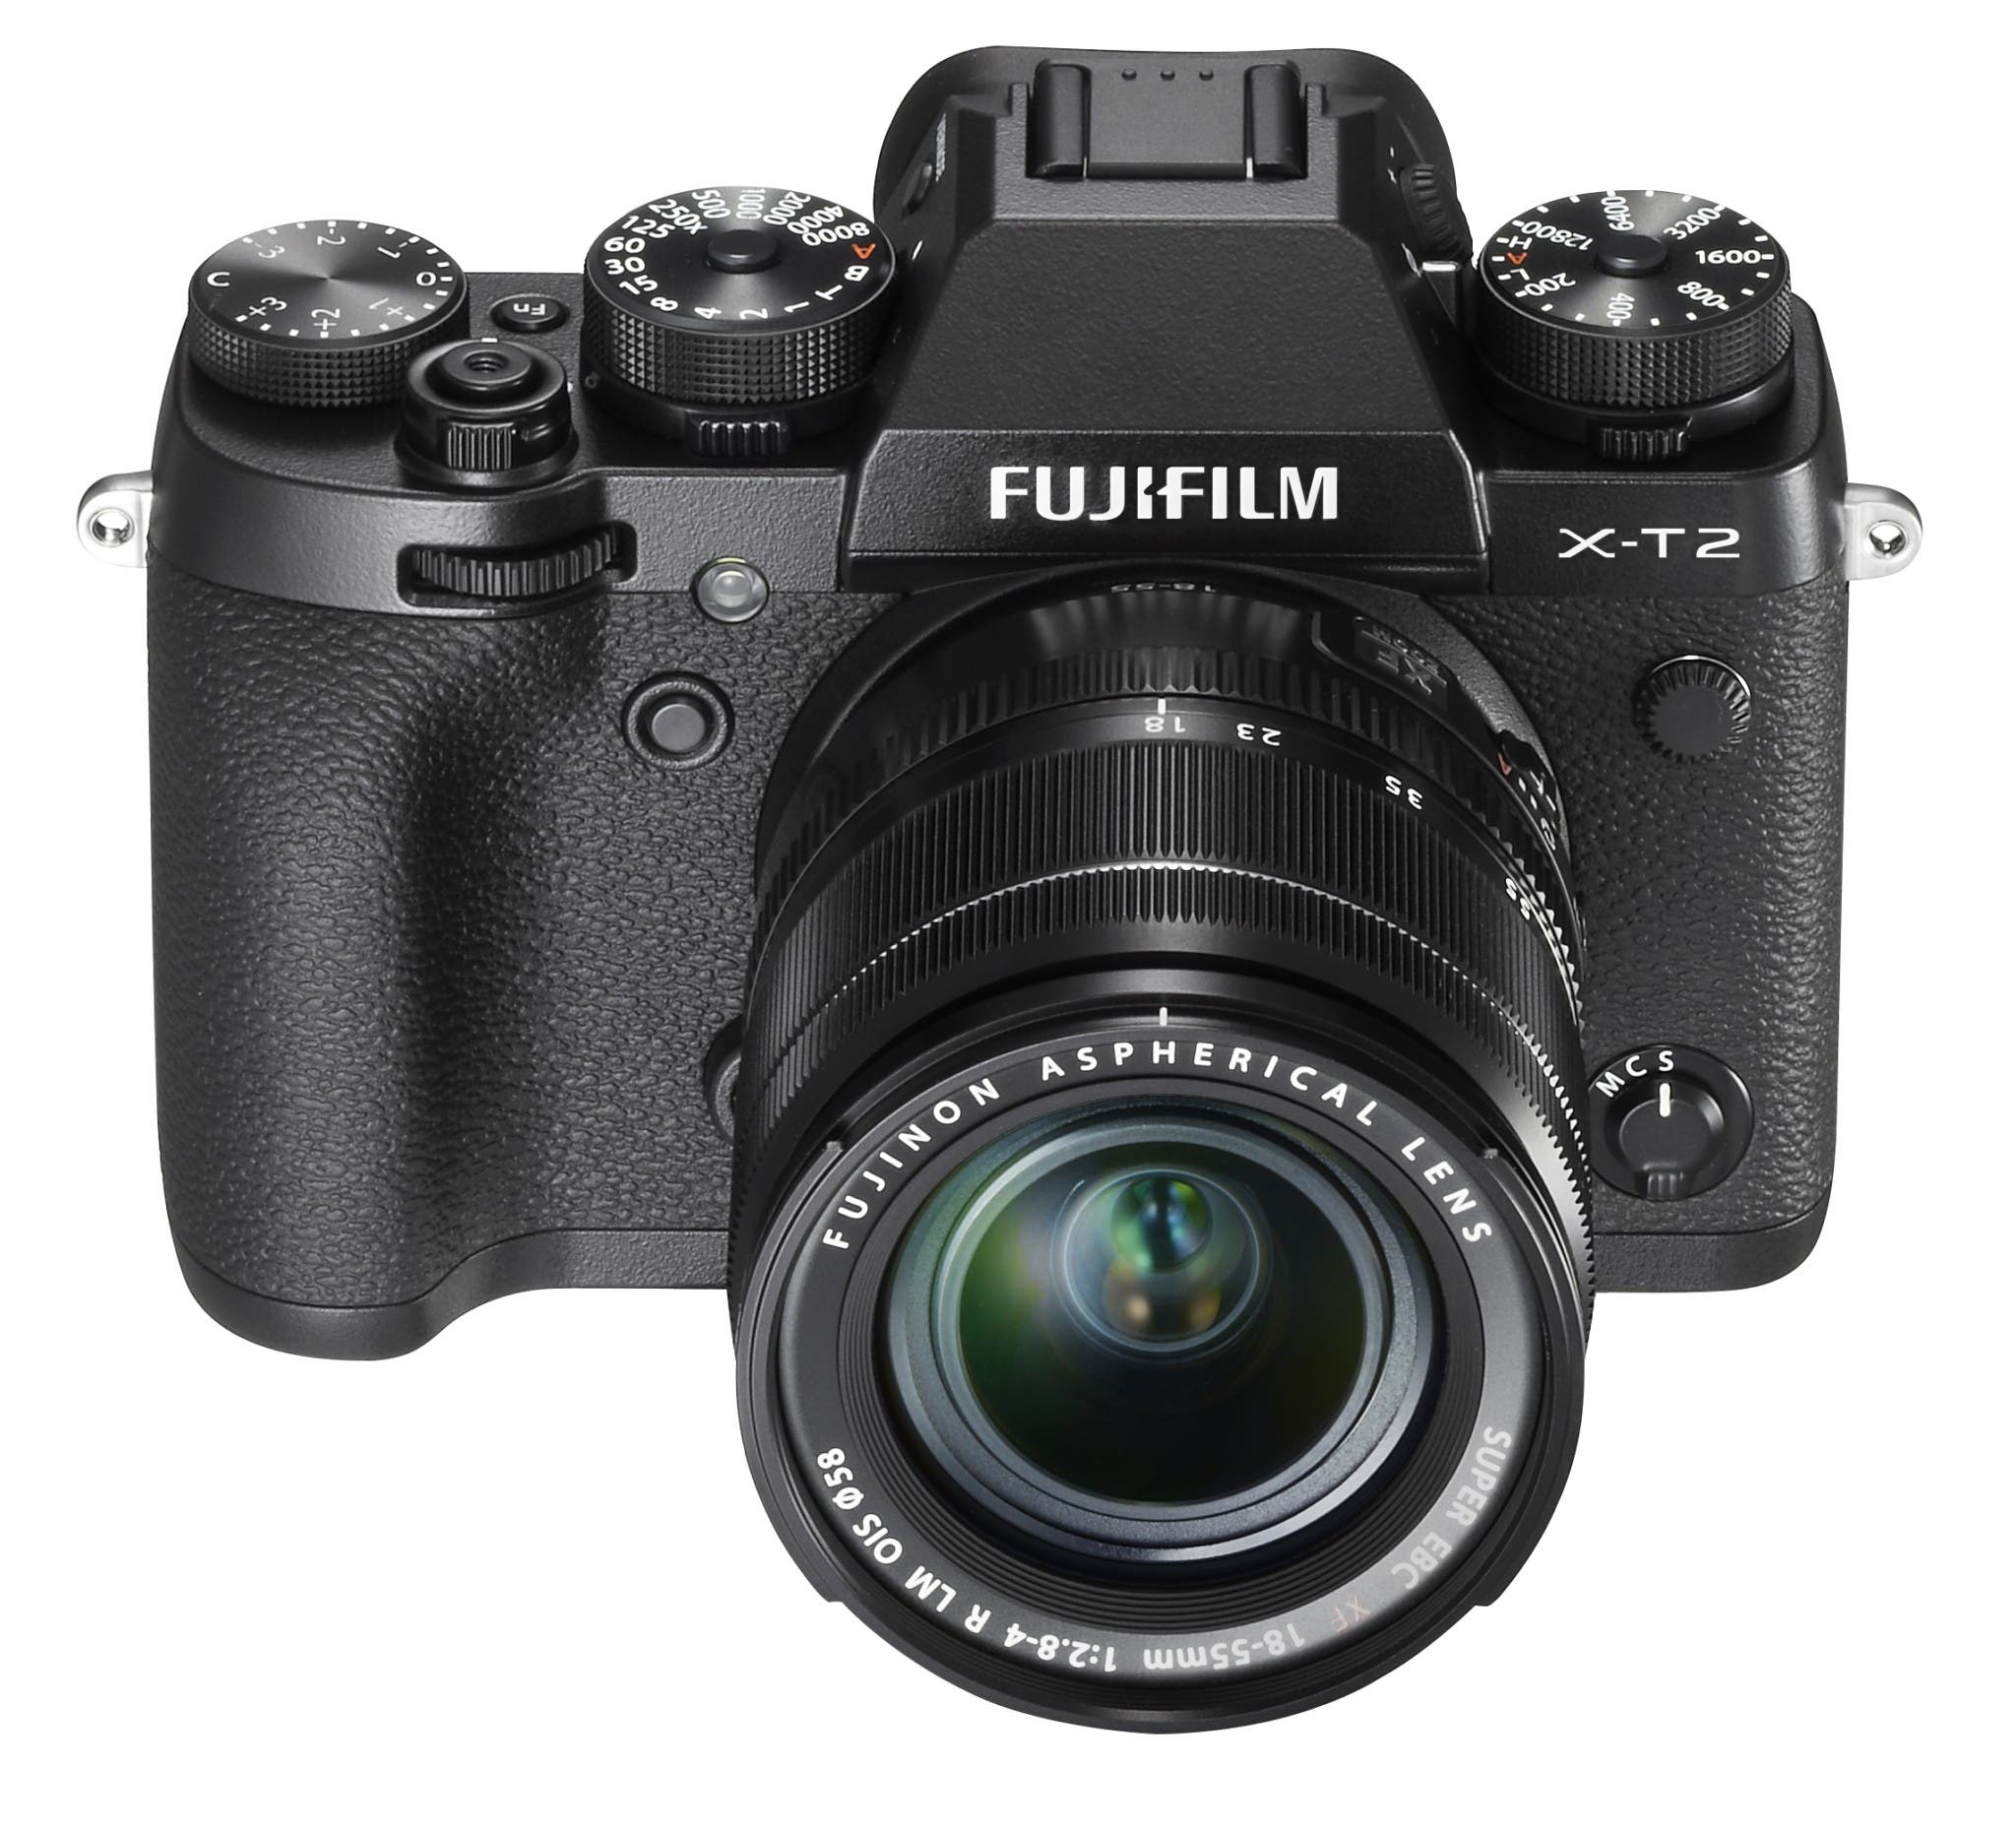 Which One: Fujifilm X Pro 2 vs Fujifilm X-T2